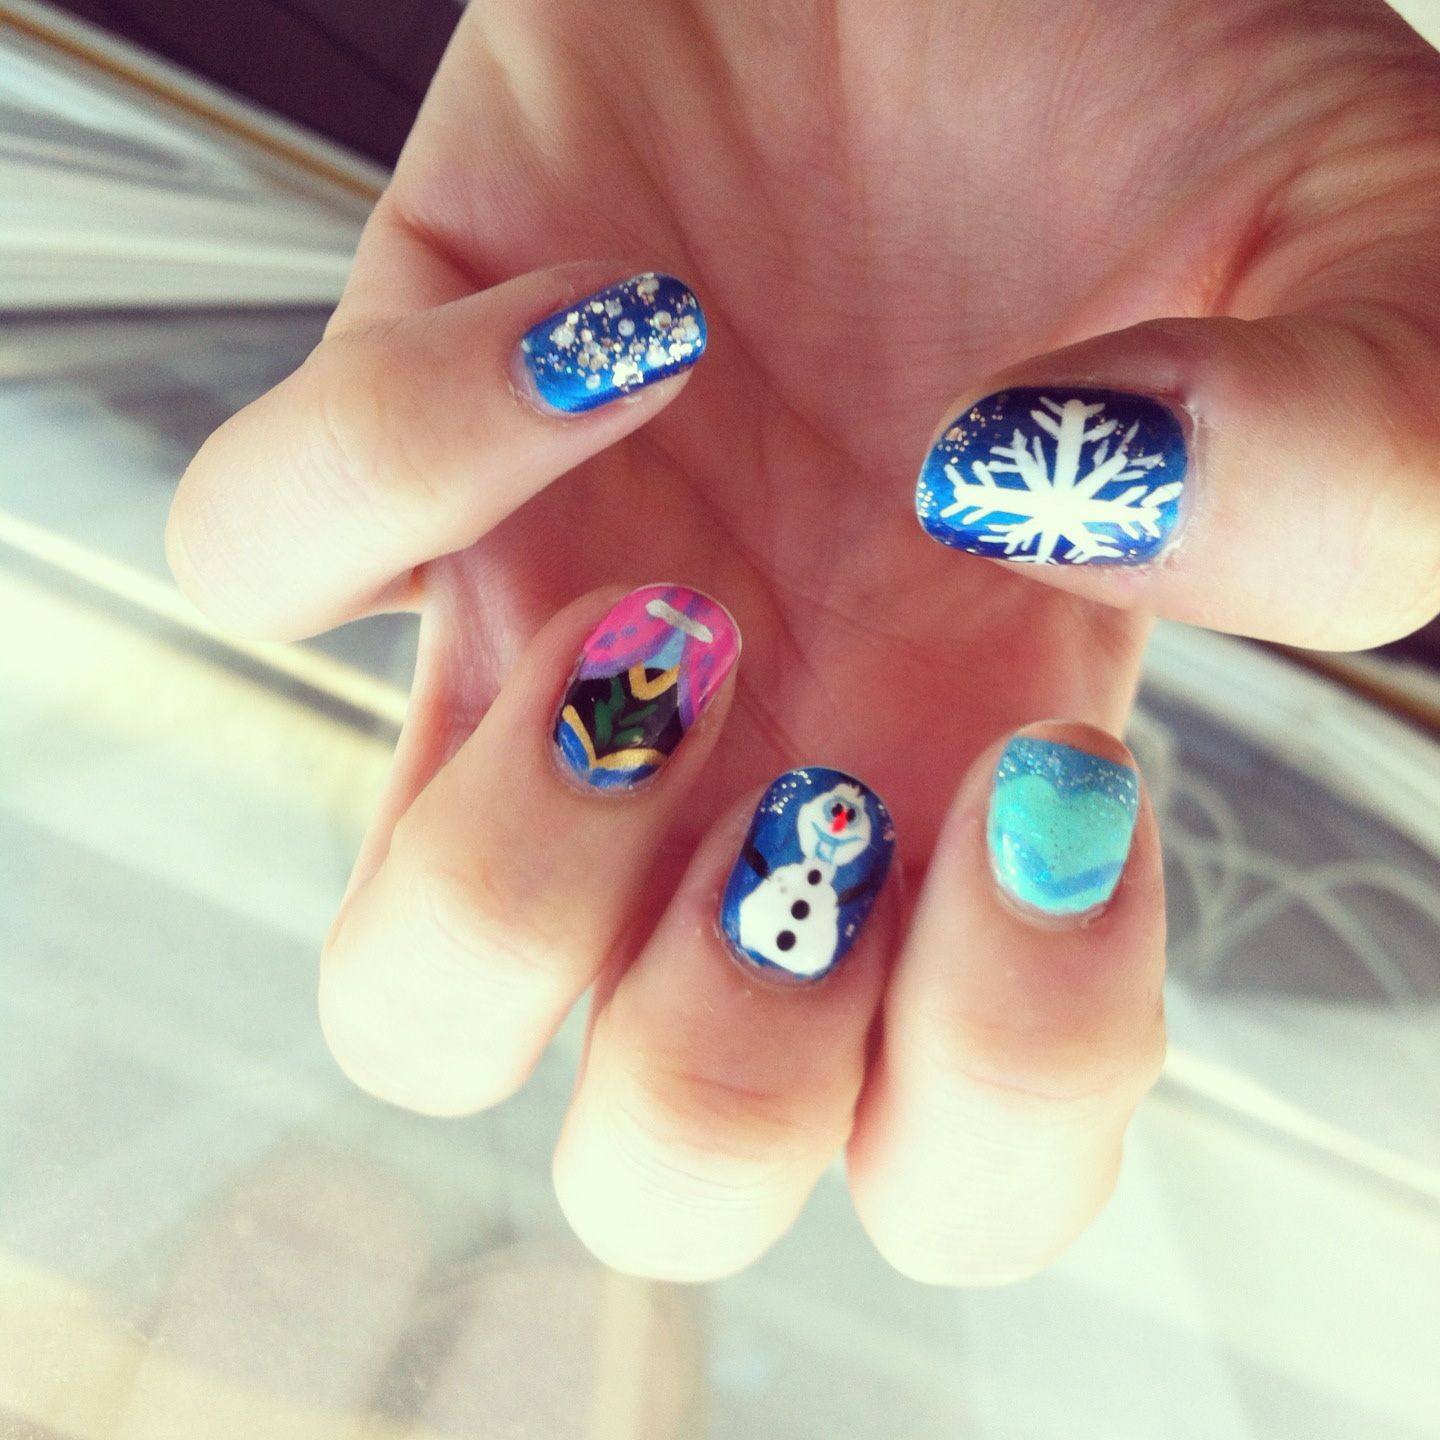 nailstorming ice queen